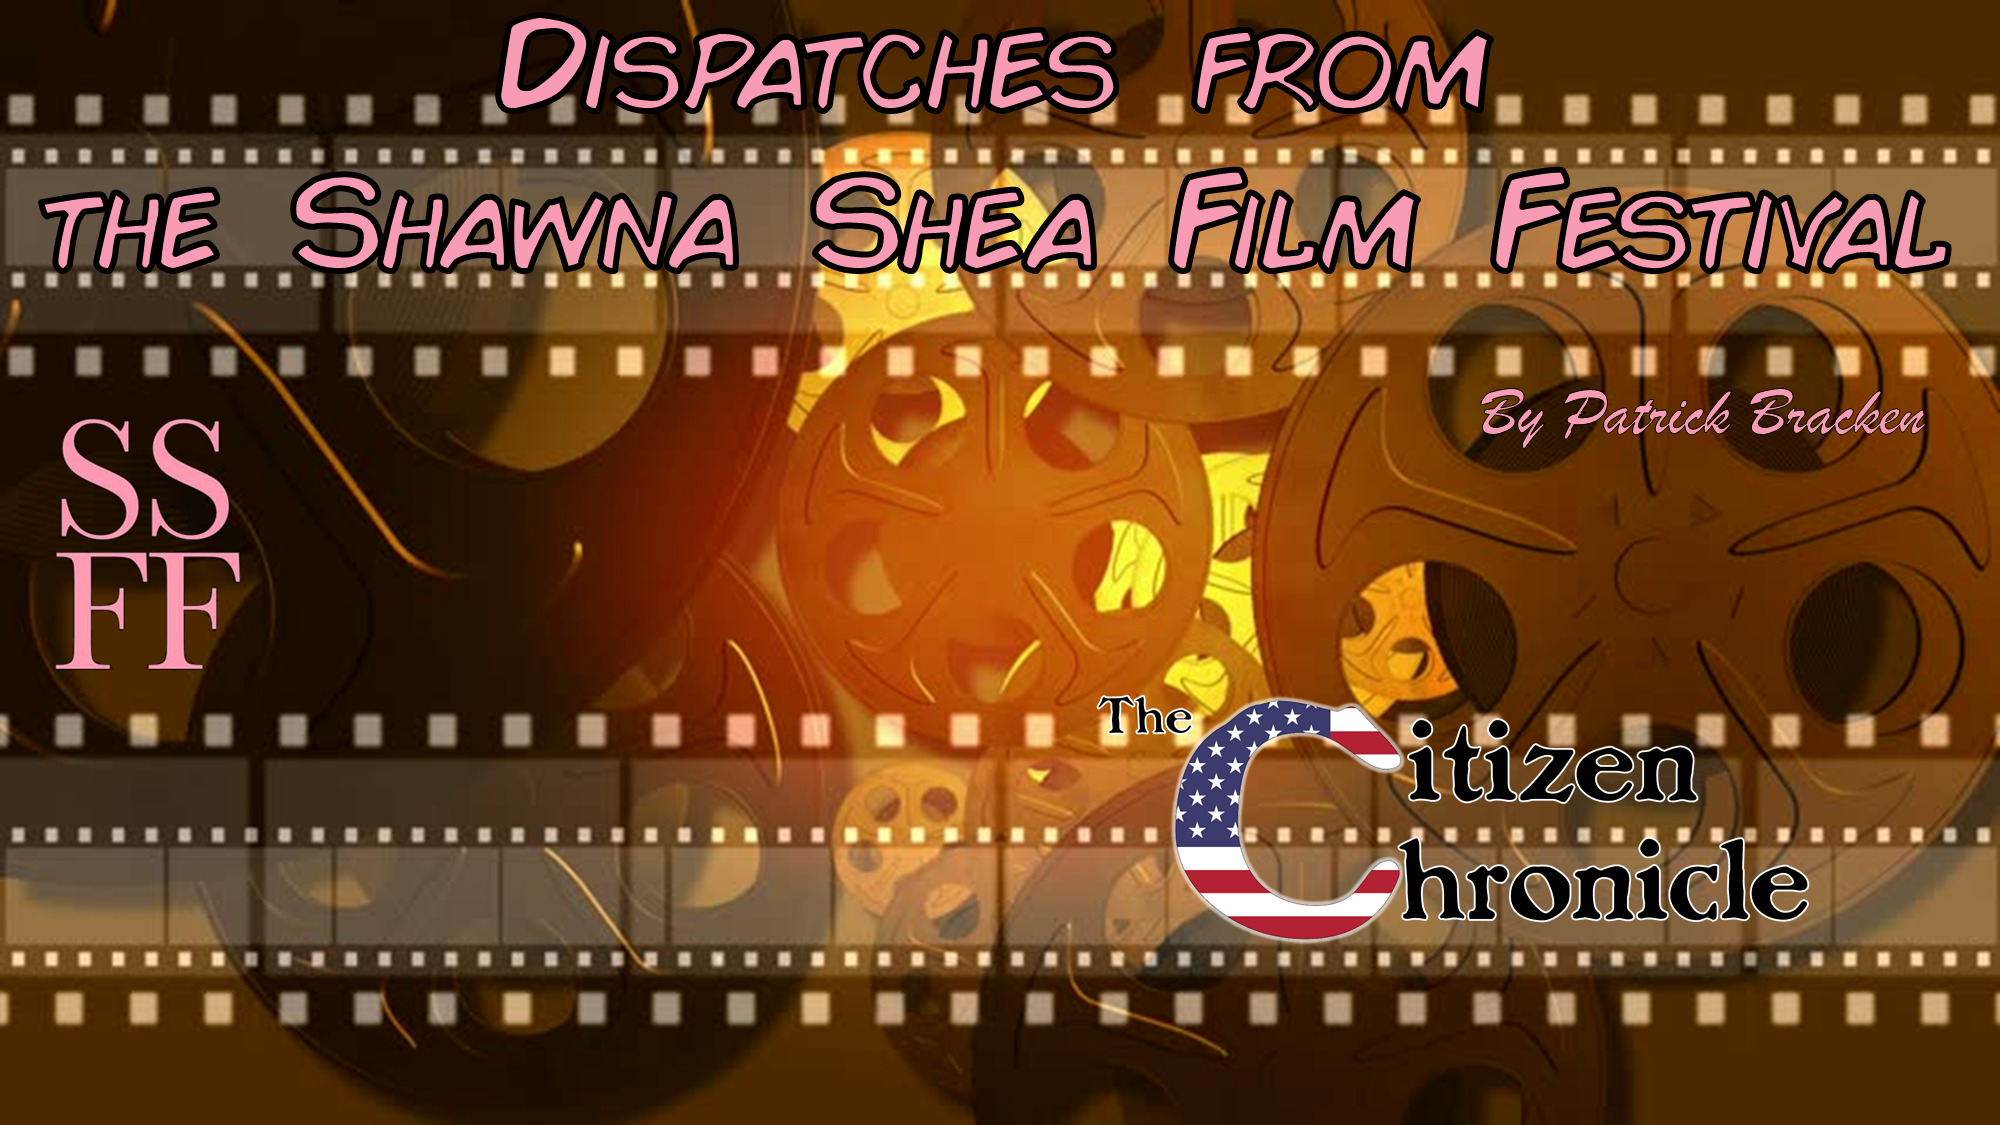 Shawna Shea Film Festival to wrap up on Saturday